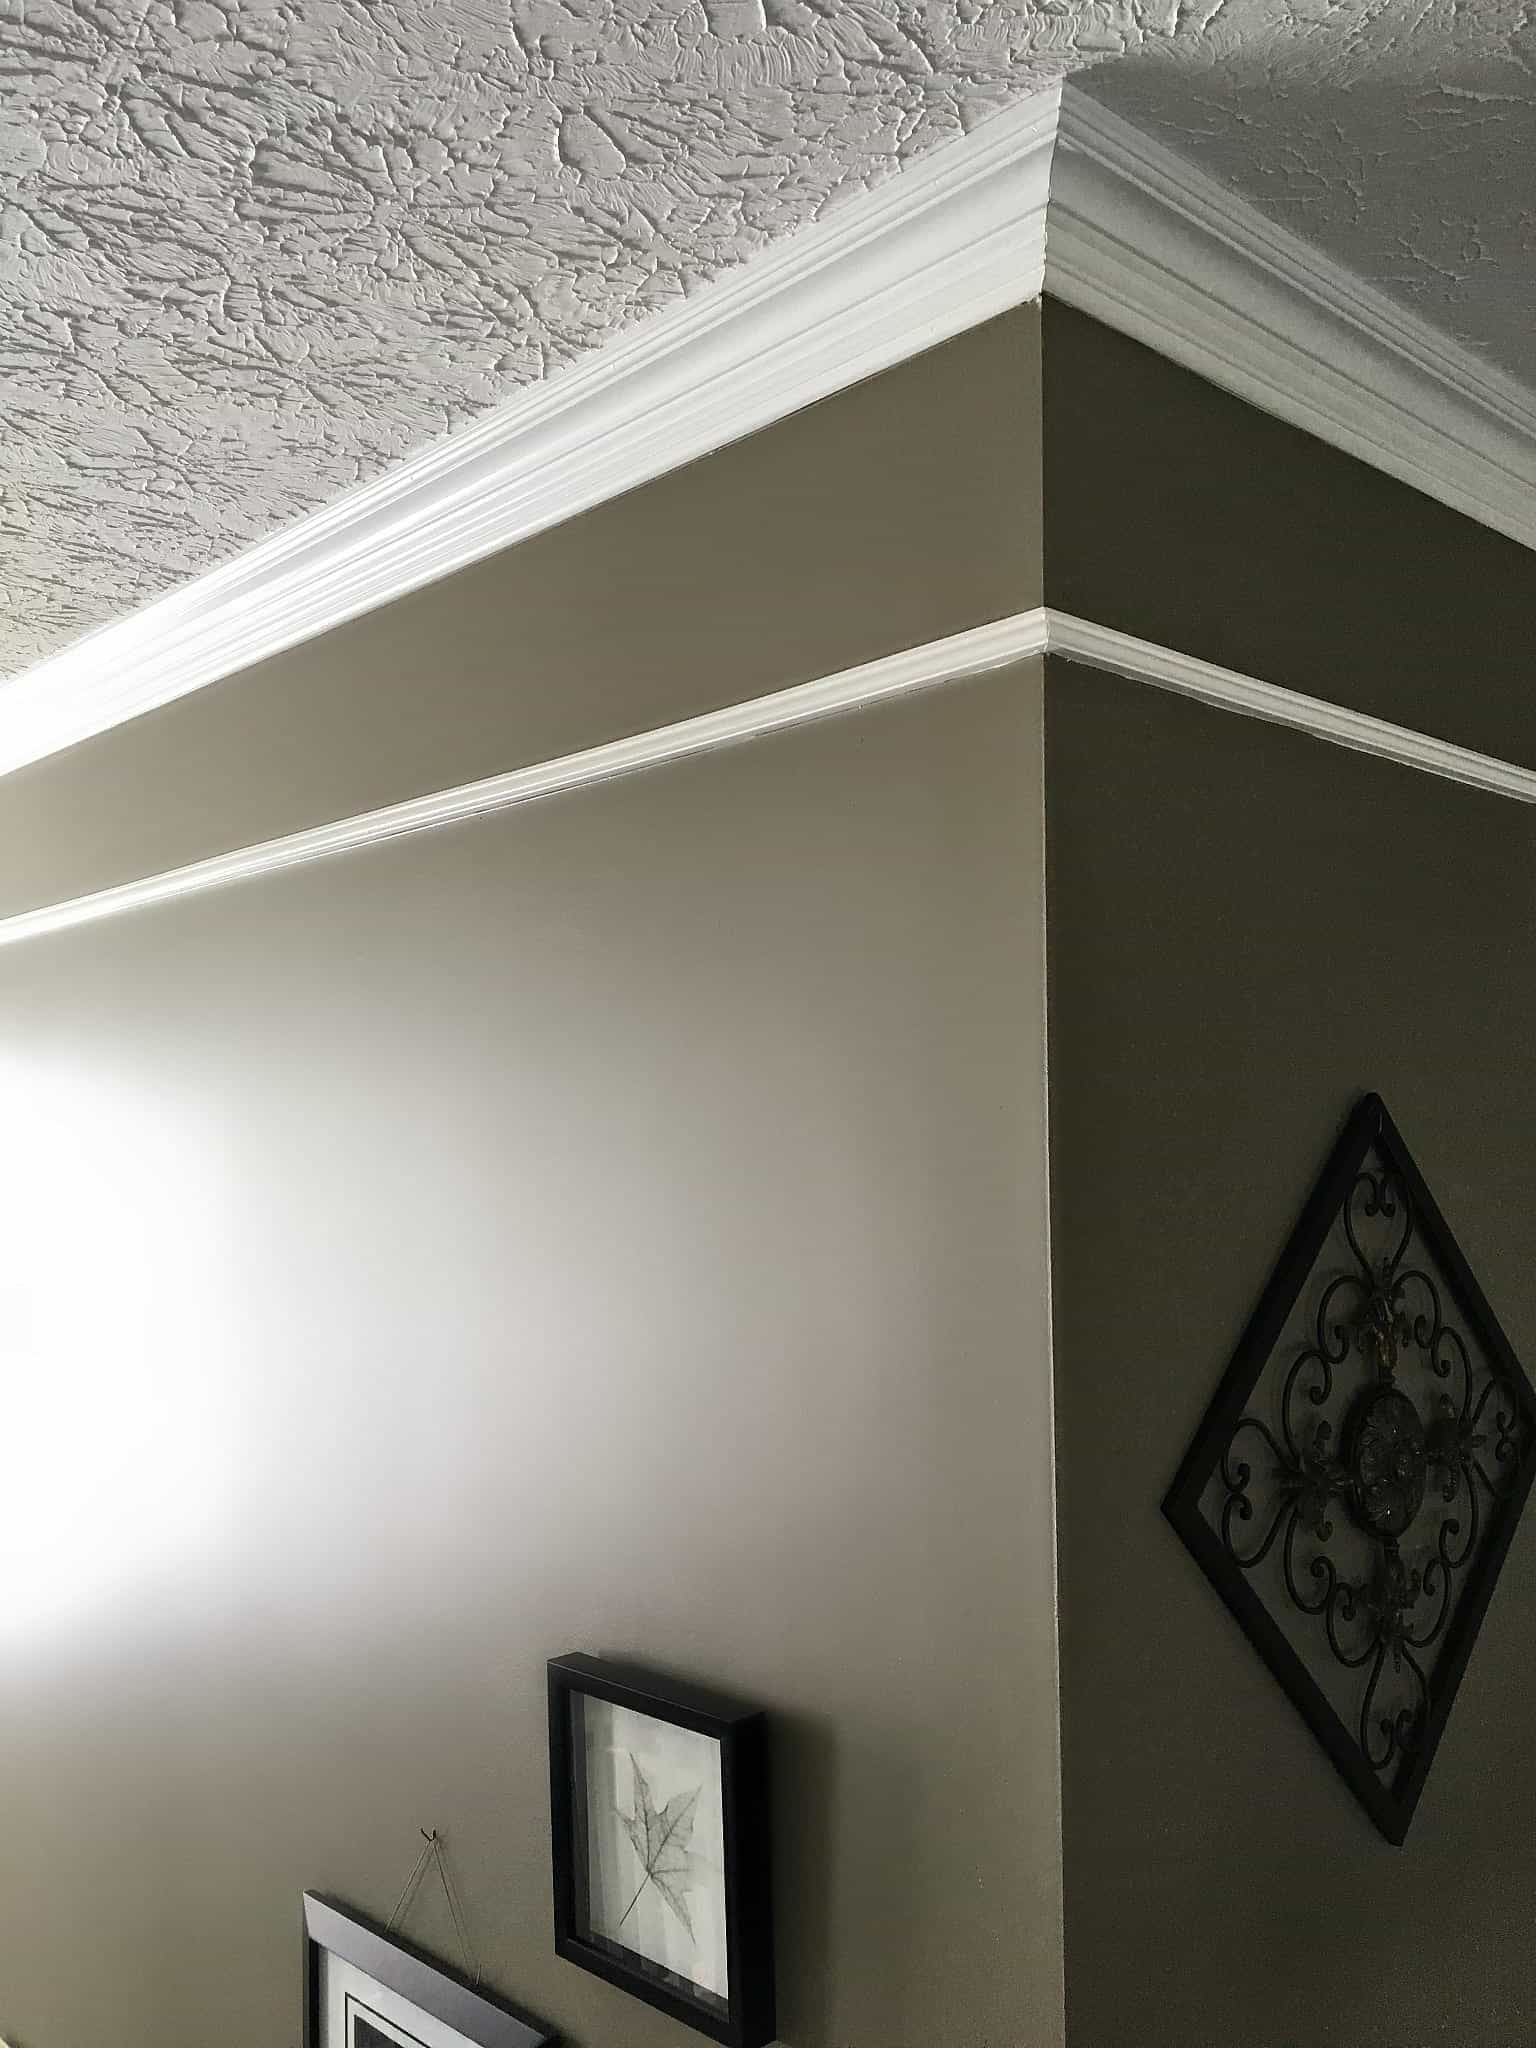 Two Story Foyer Molding : Two story foyer upgrade add faux frieze molding snazzy